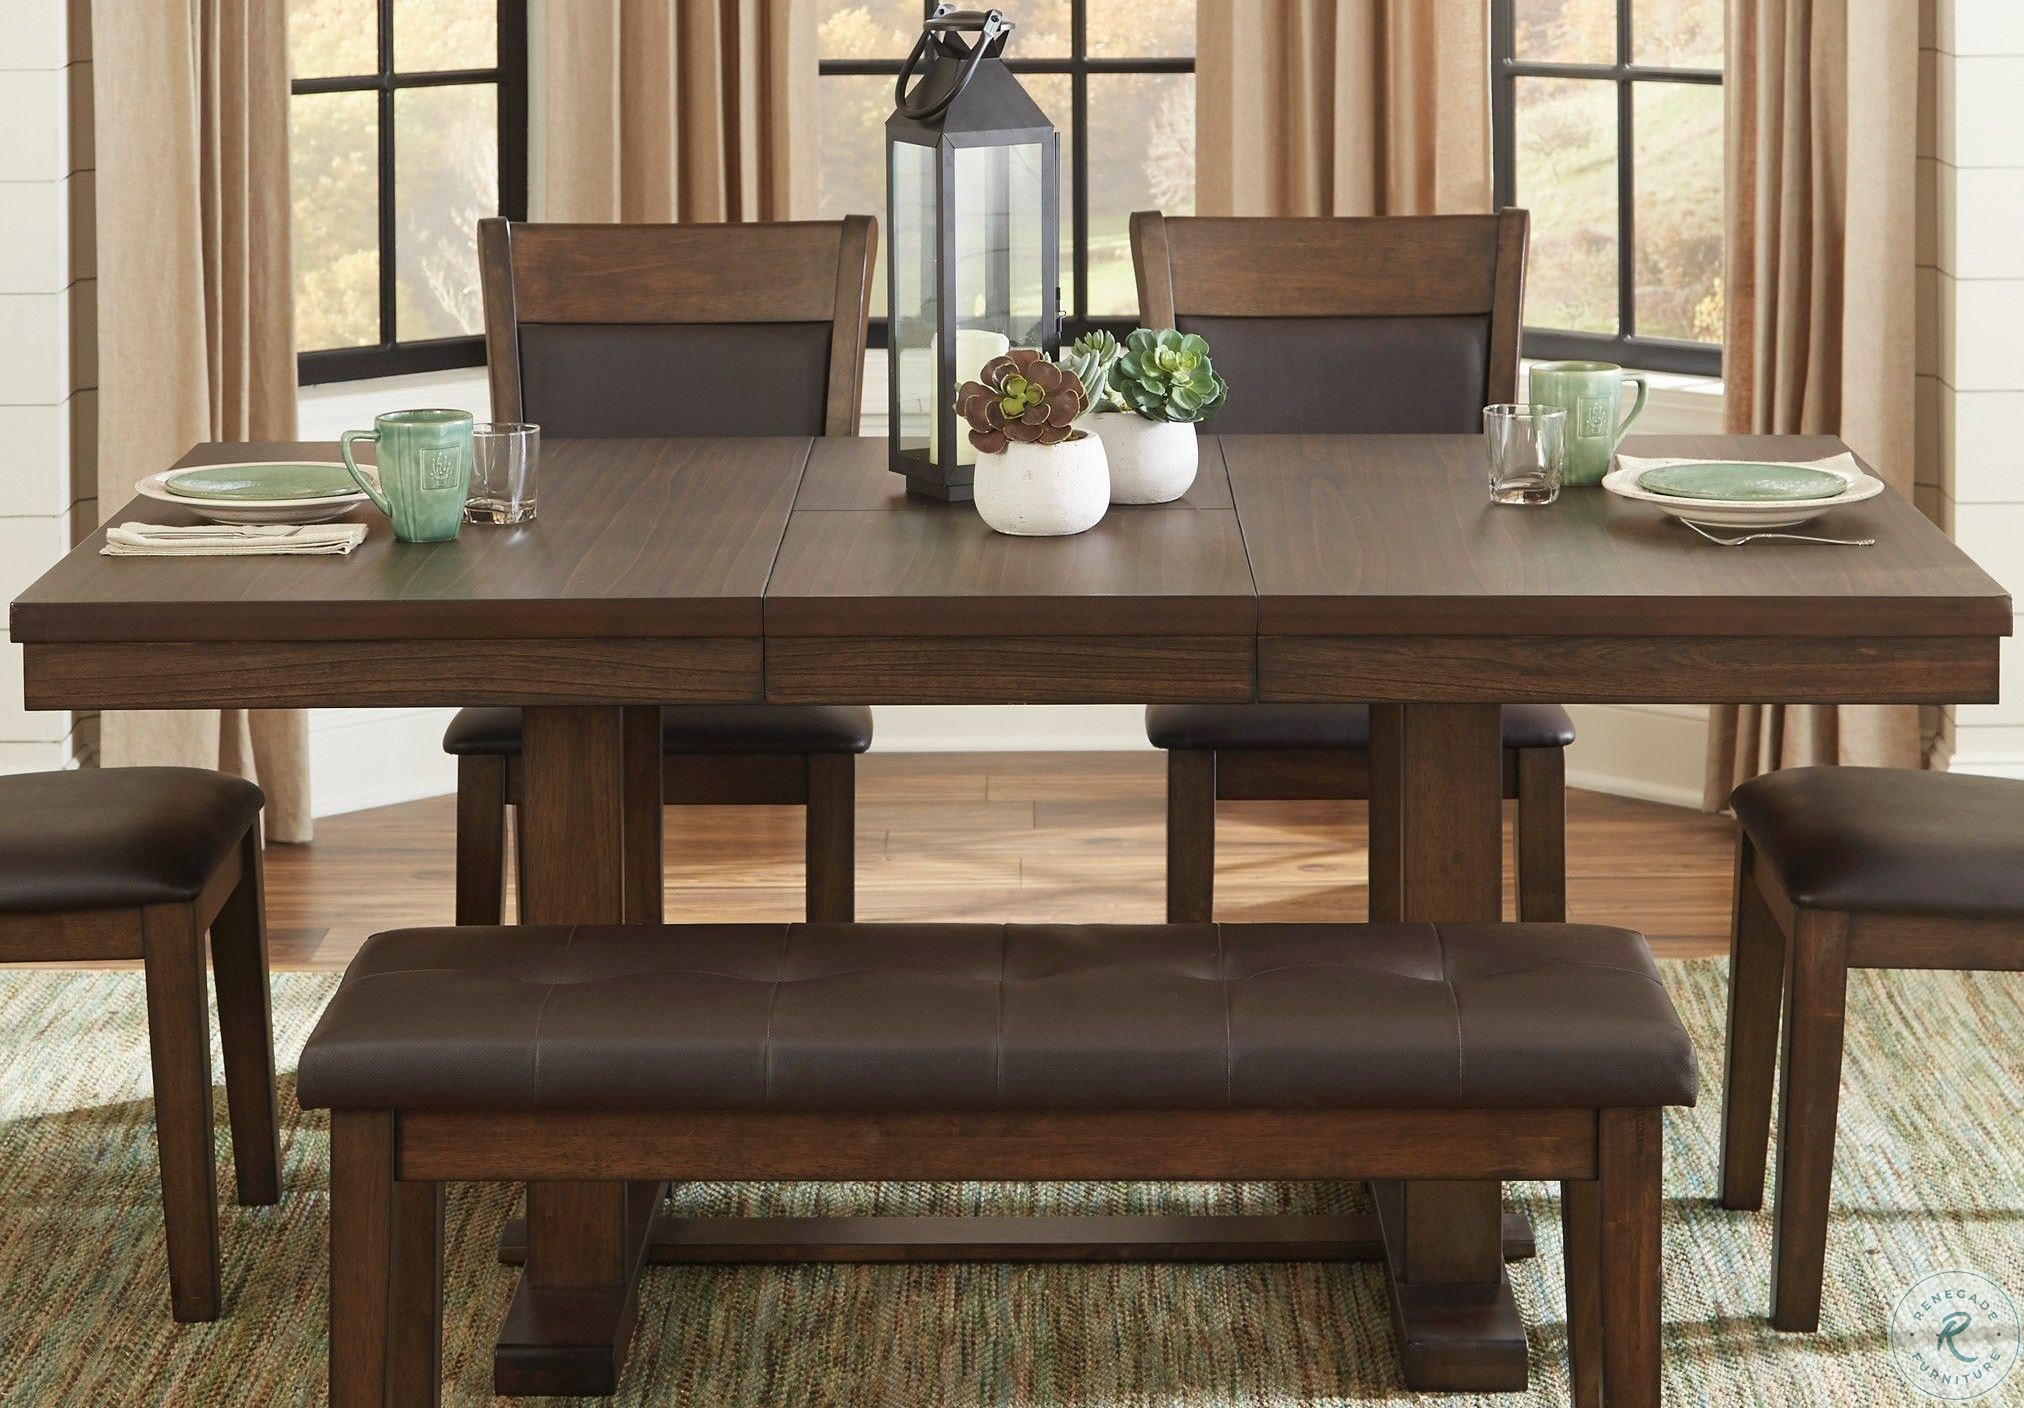 Wieland Light Rustic Brown Extendable Dining Room Set From Homelegance Homegallerystore Com 5614 72